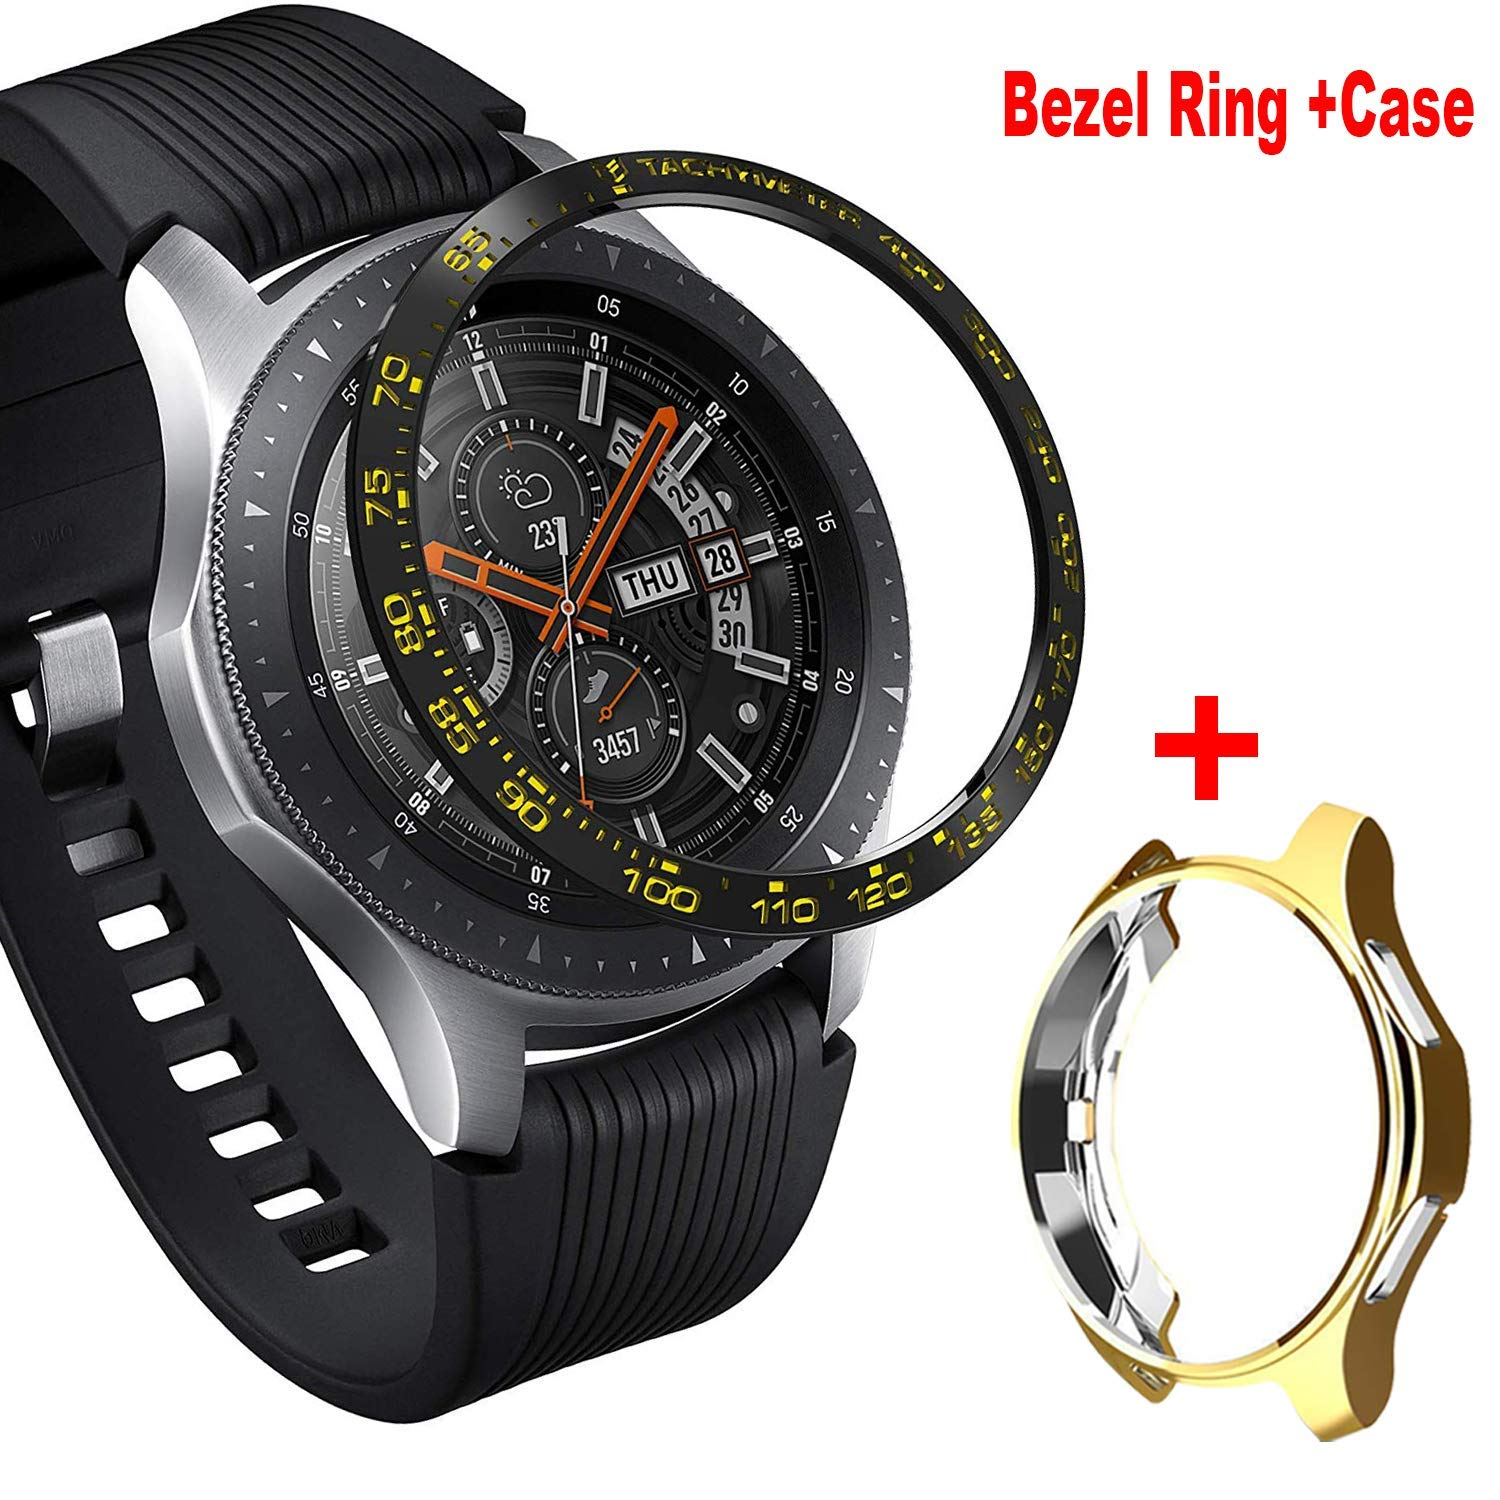 Amazon.com: Aluminum Bezel Ring Compatiable for Samsung ...